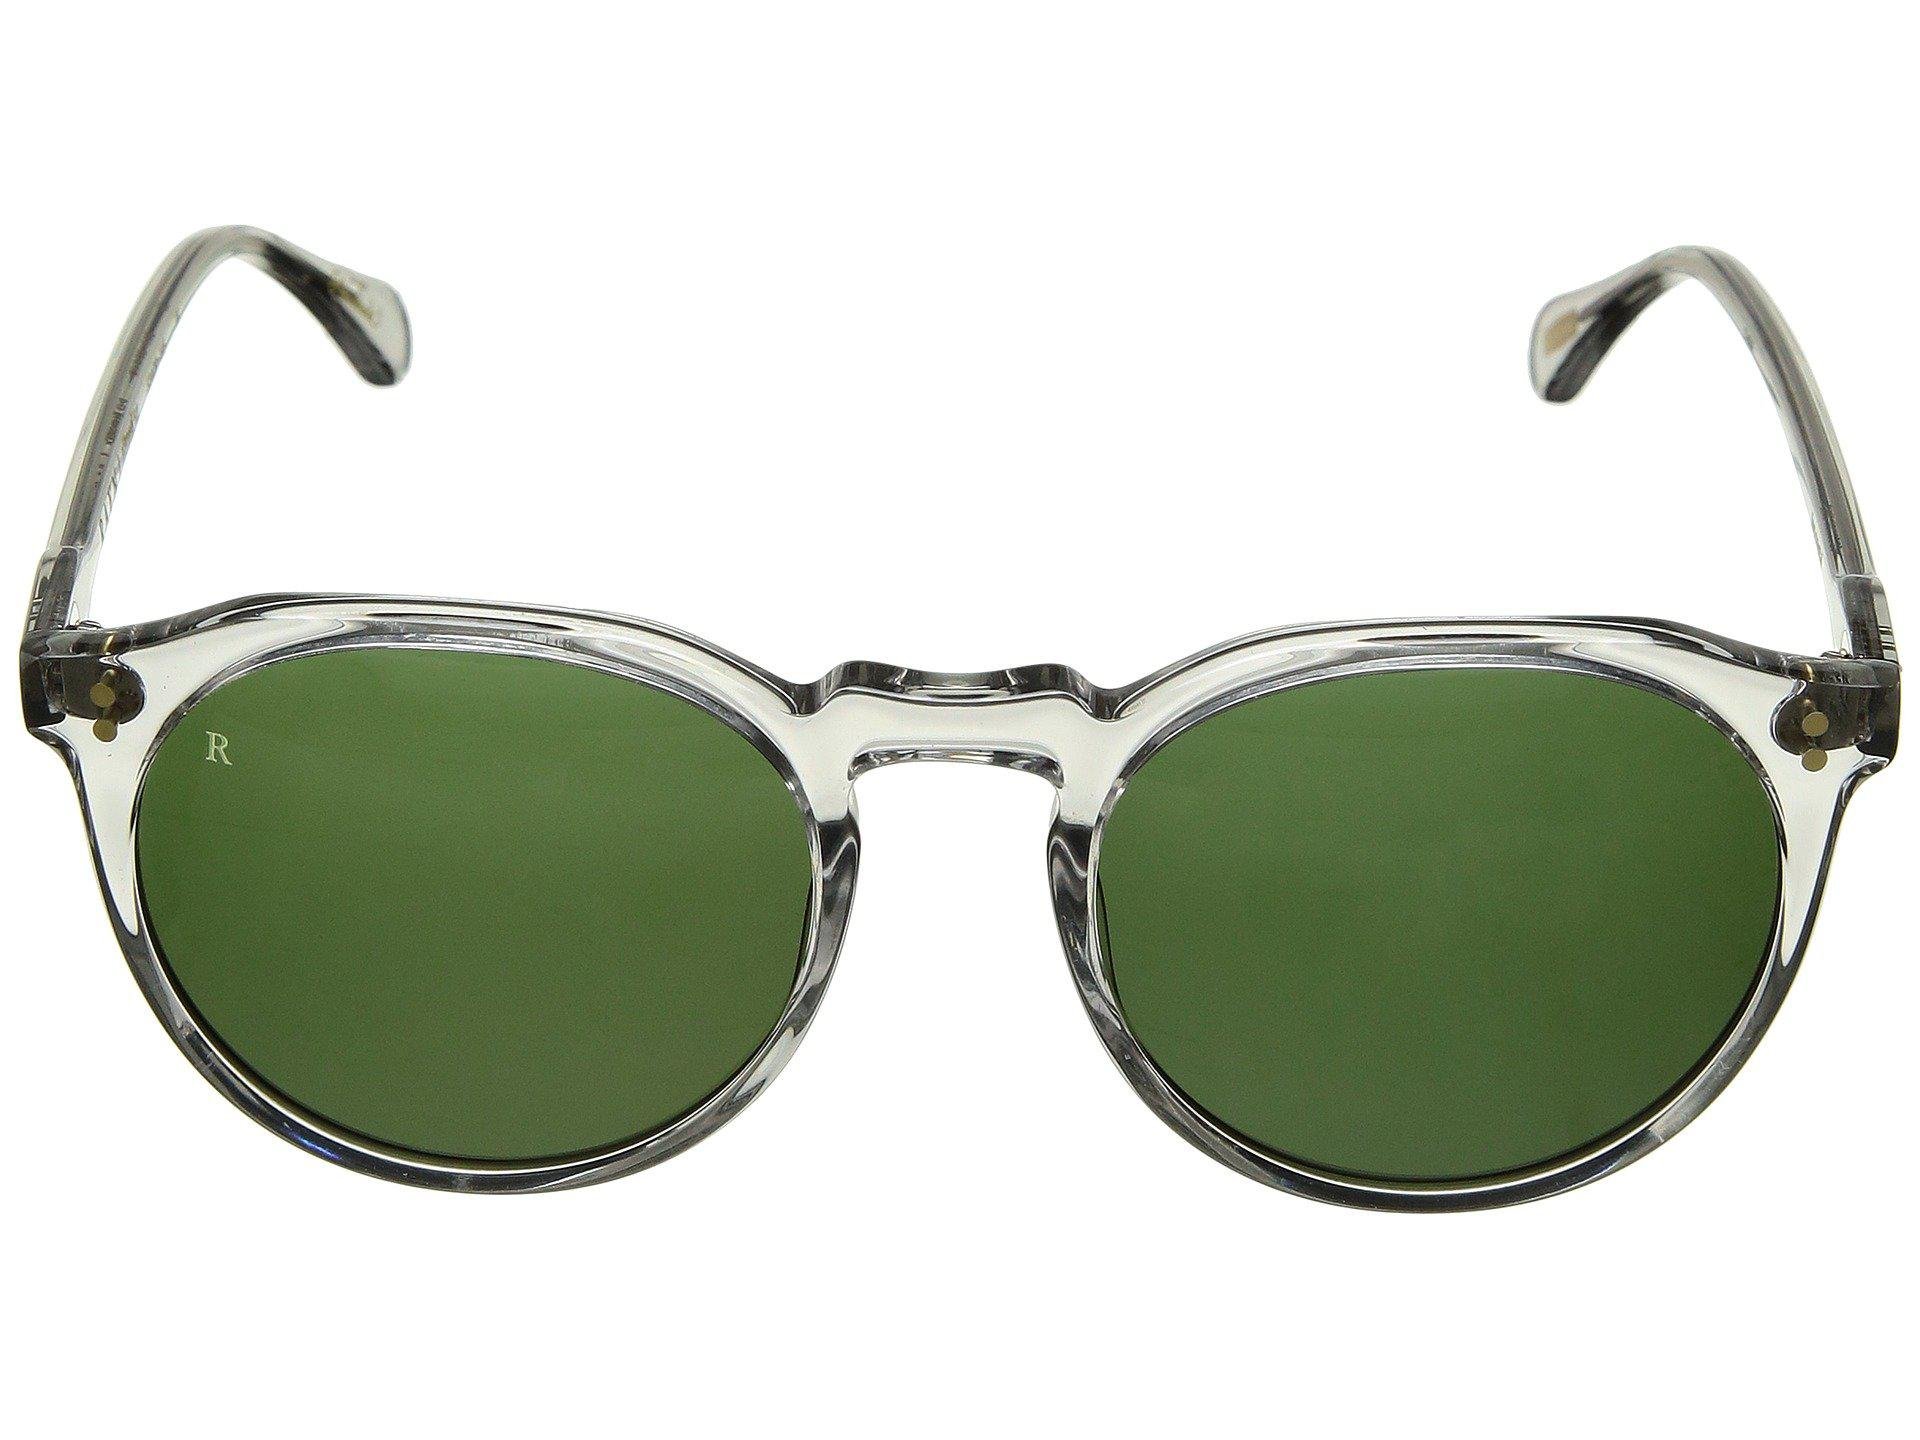 4506ce4307a Lyst - Raen Remmy 52 (black tan Brown) Fashion Sunglasses in Green